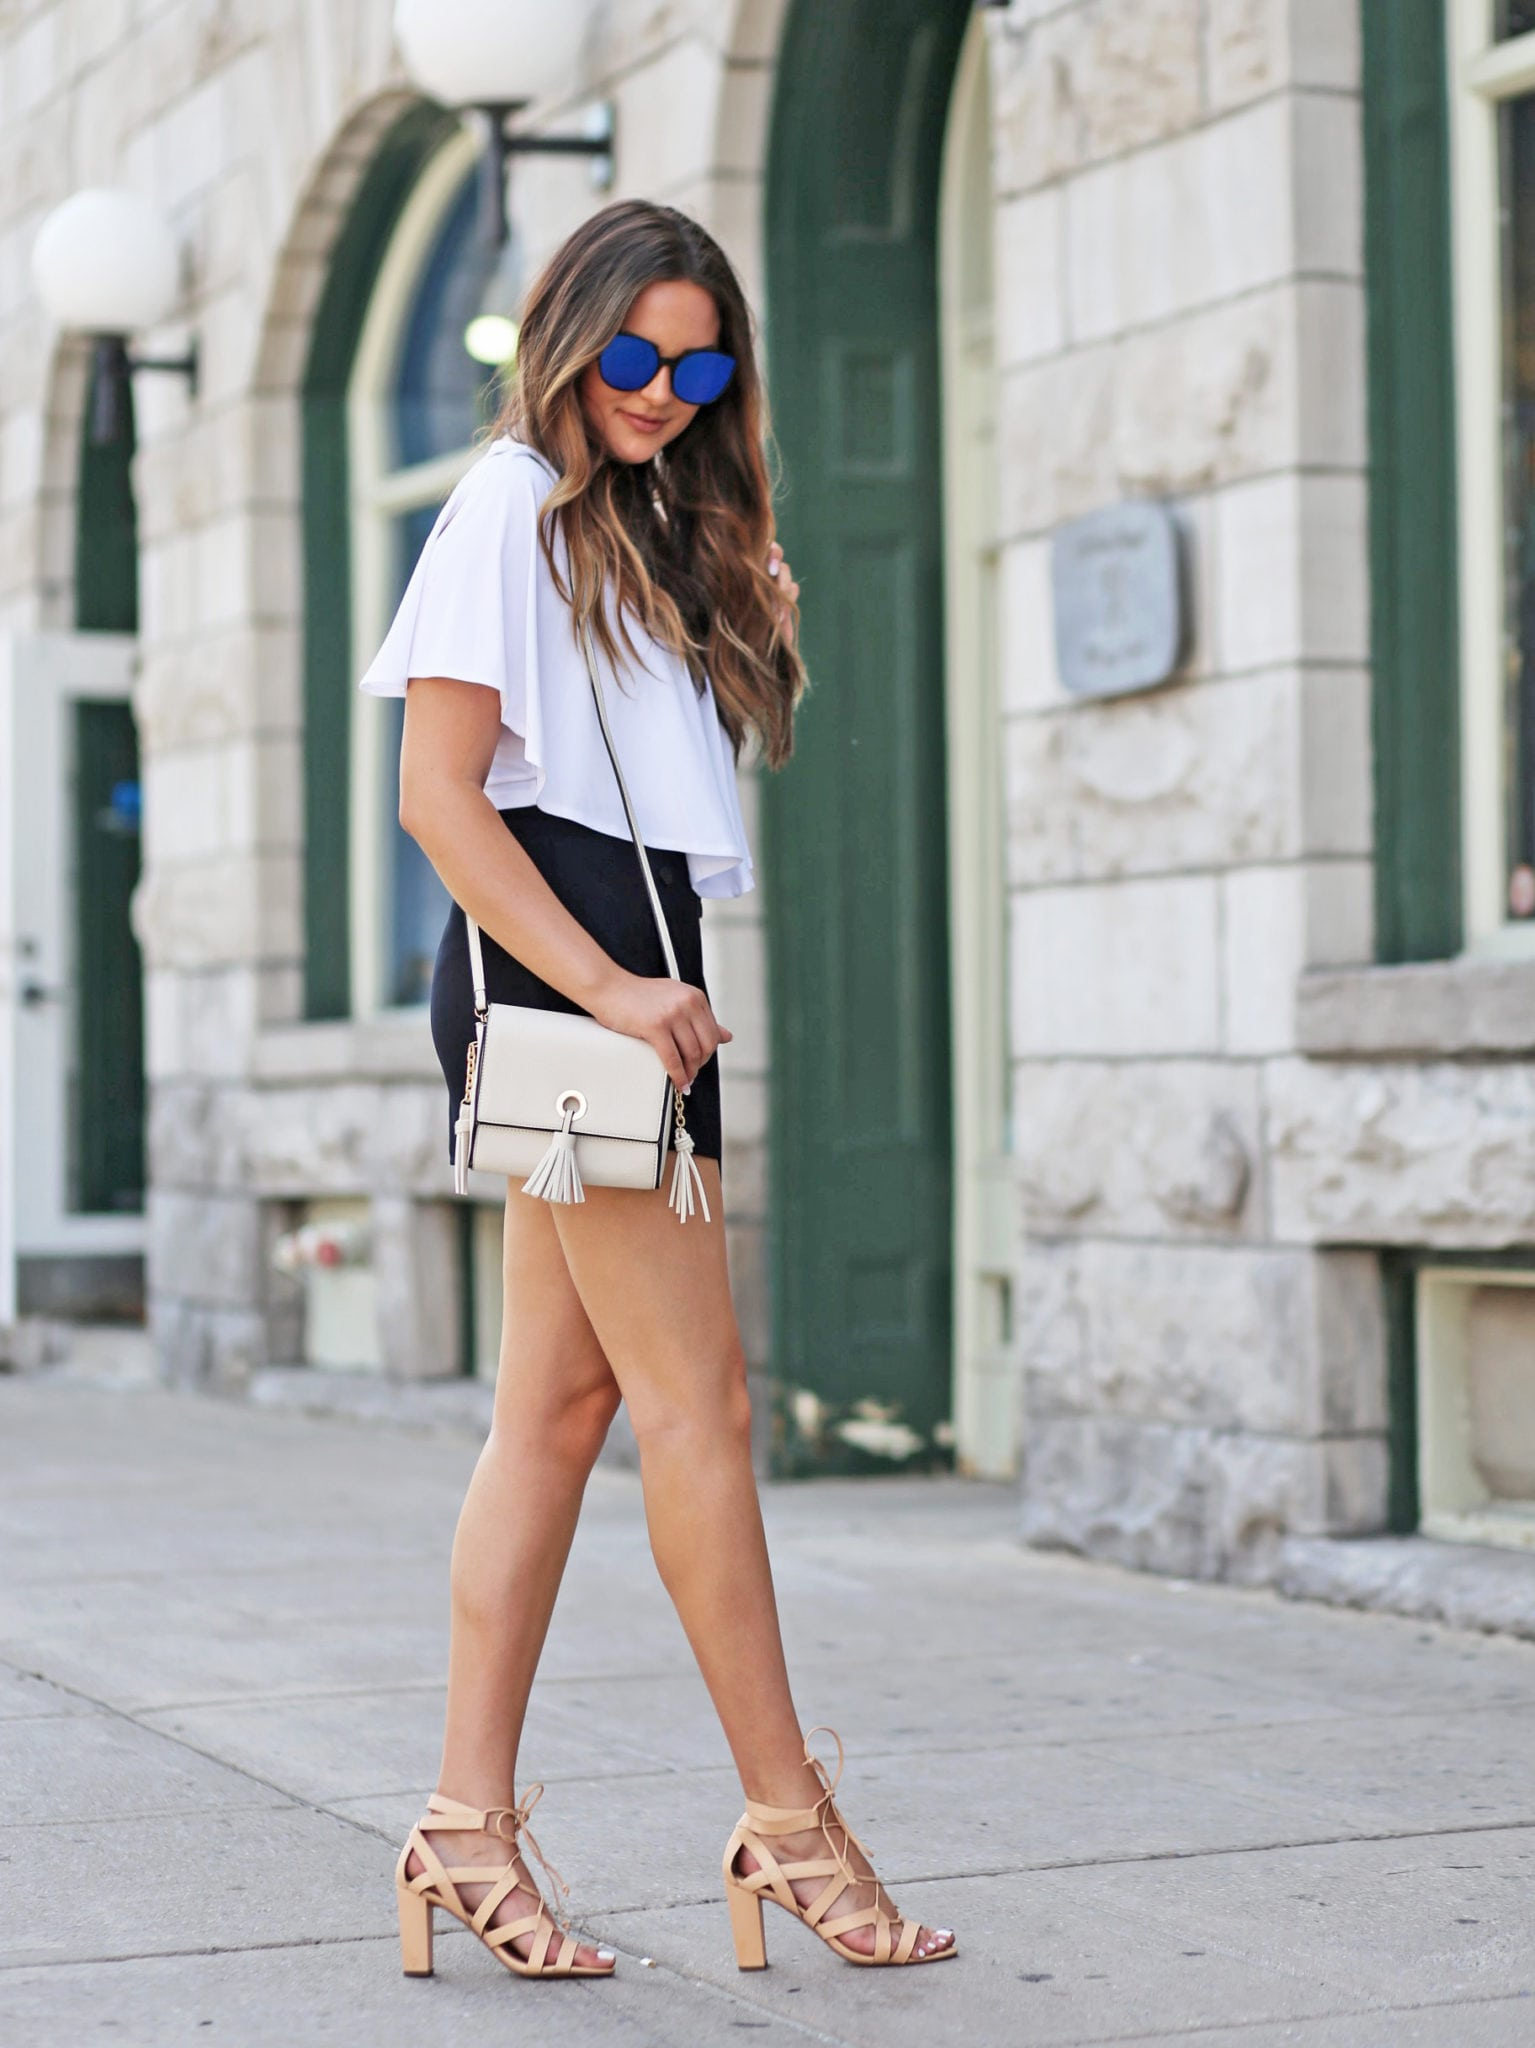 Mash Elle blogger | high waited shorts | black and white outfit | ruffle top | crossbody bag